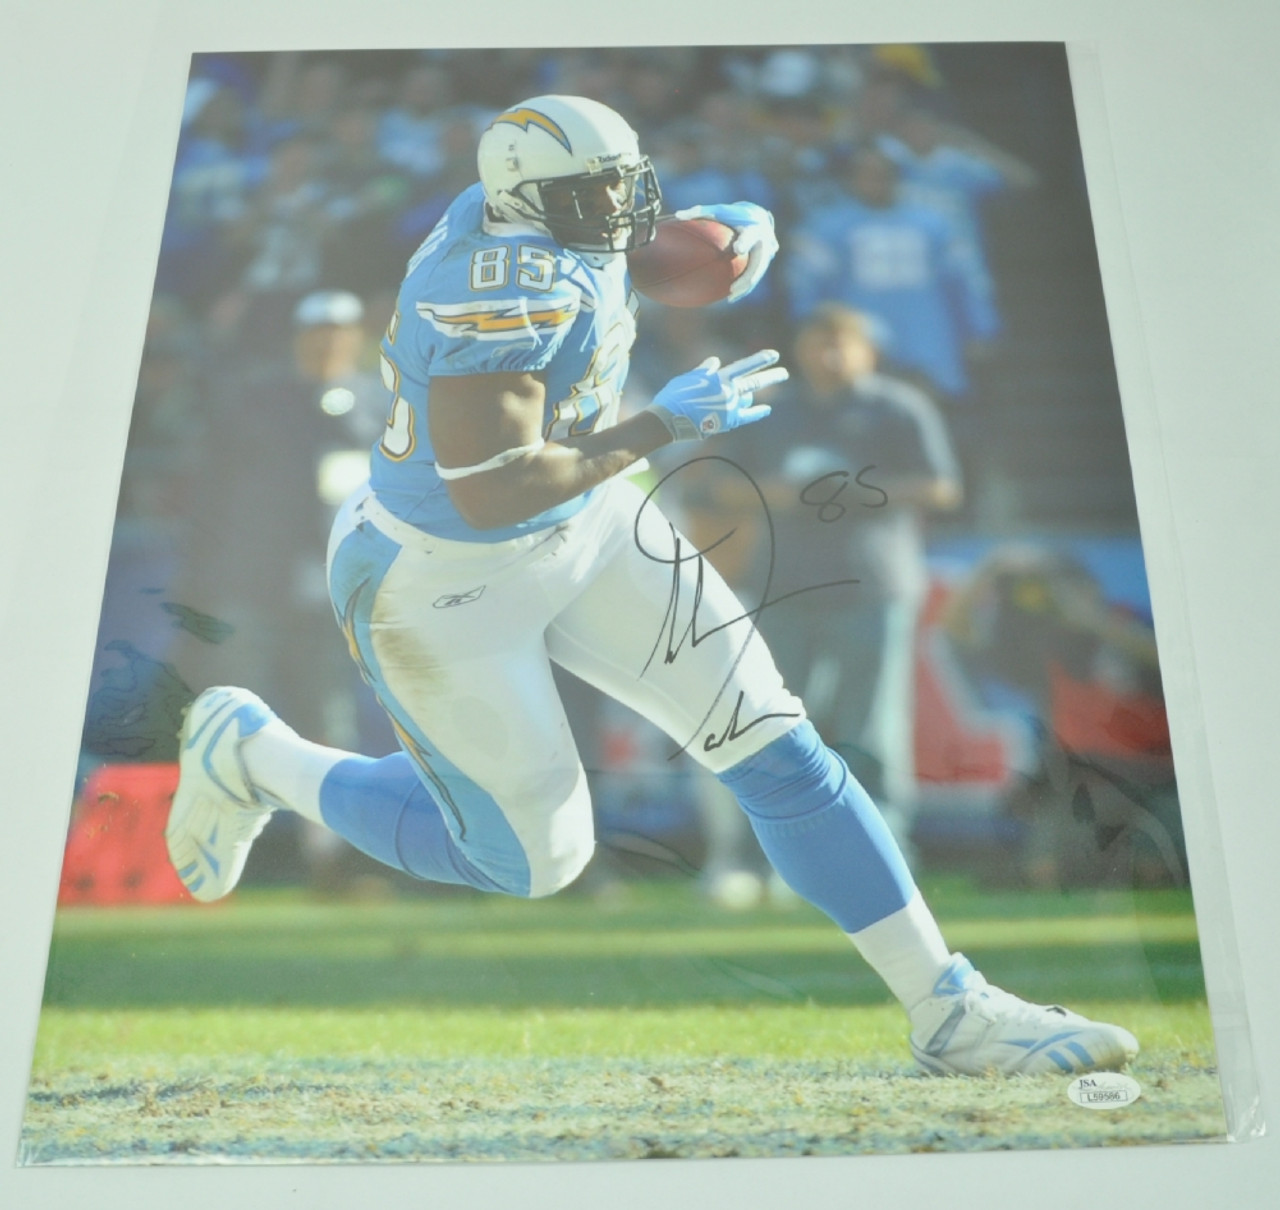 ab02e24b NFL Los Angeles Chargers Tight End Antonio Gates 85 Signed Autographed  16x20 Photo JSA - Sinbad Sports Store